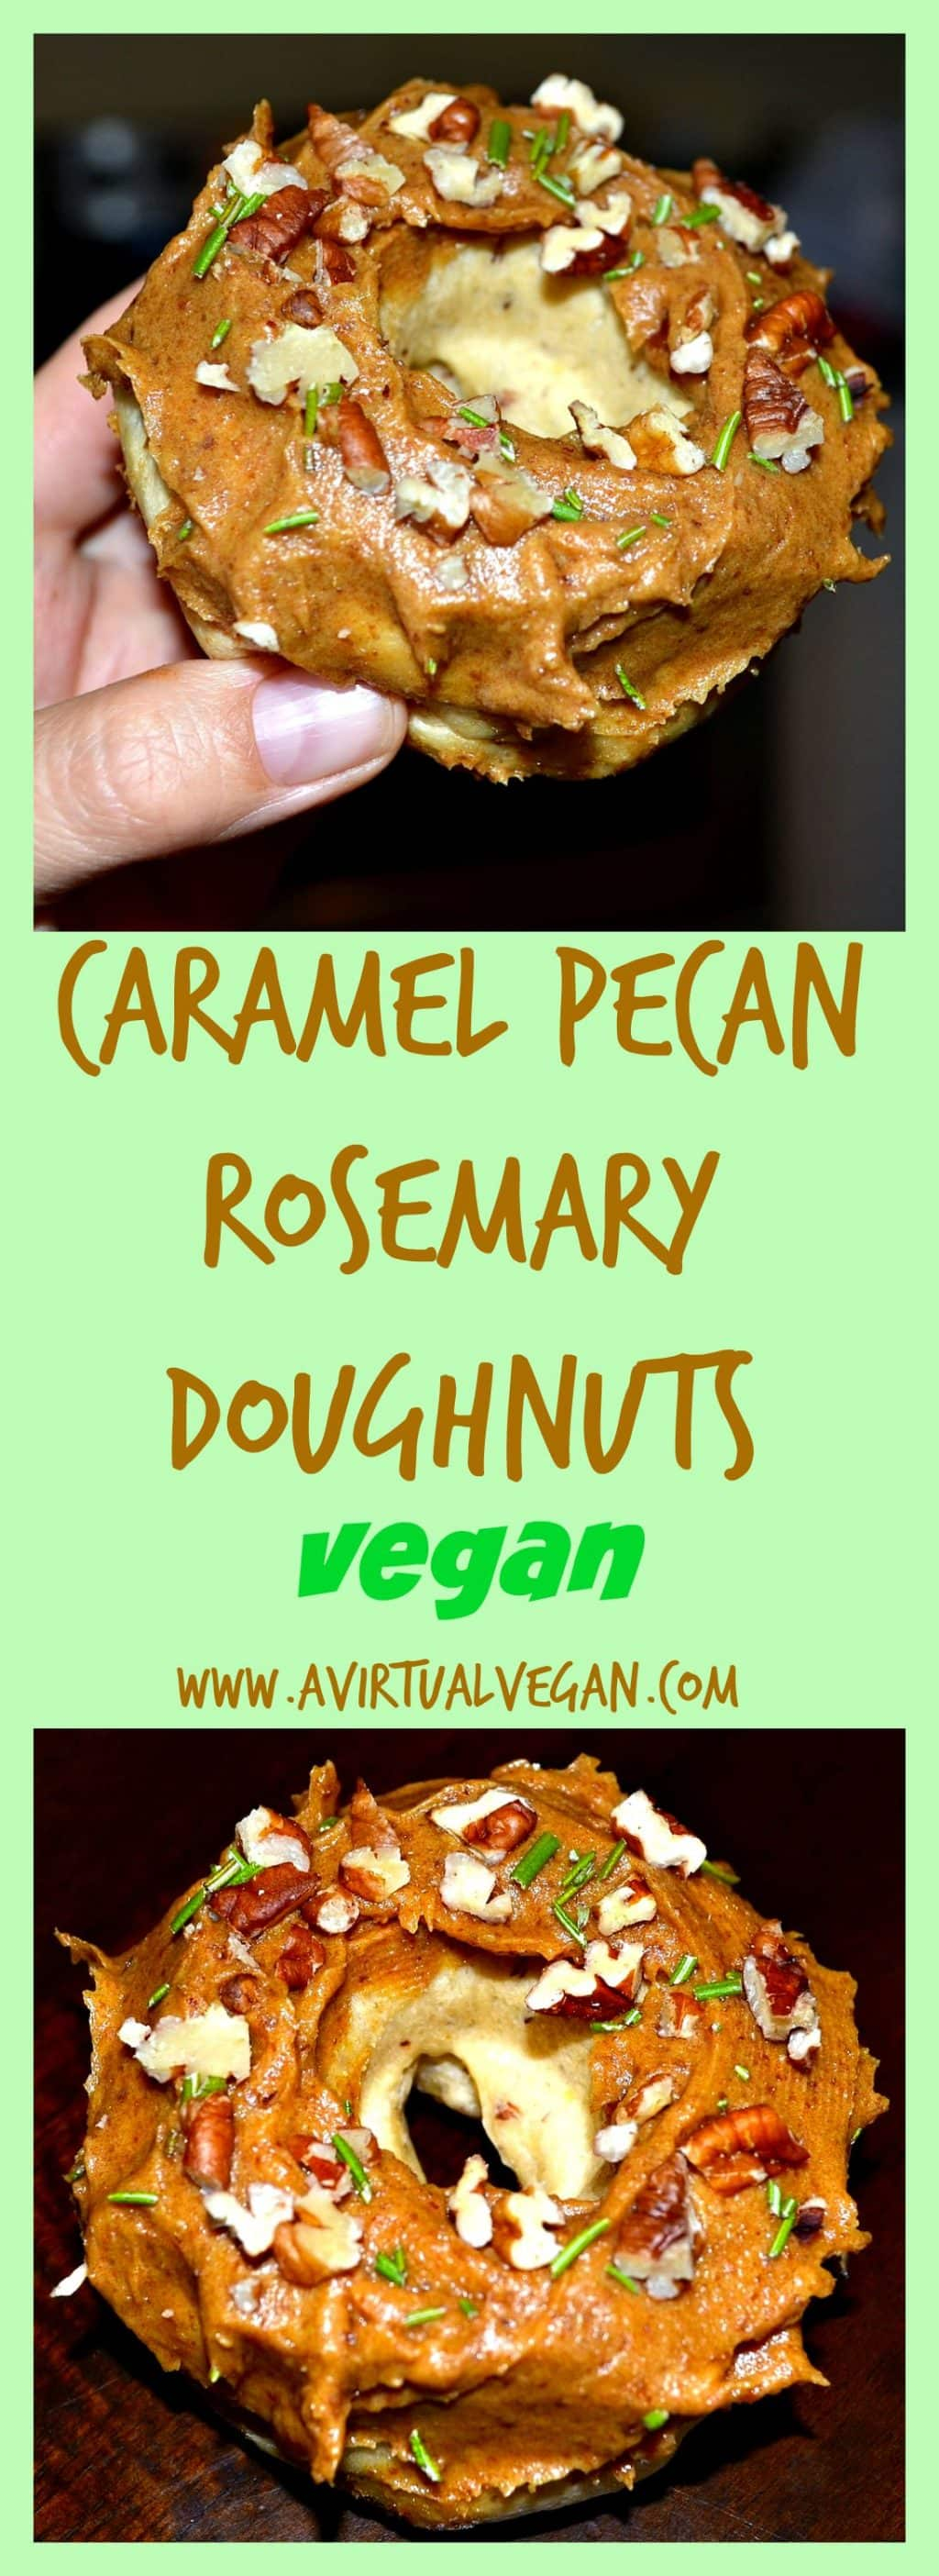 Sticky caramel, crunchy pecans and rosemary topped doughnuts. A flavour combination that you will love!